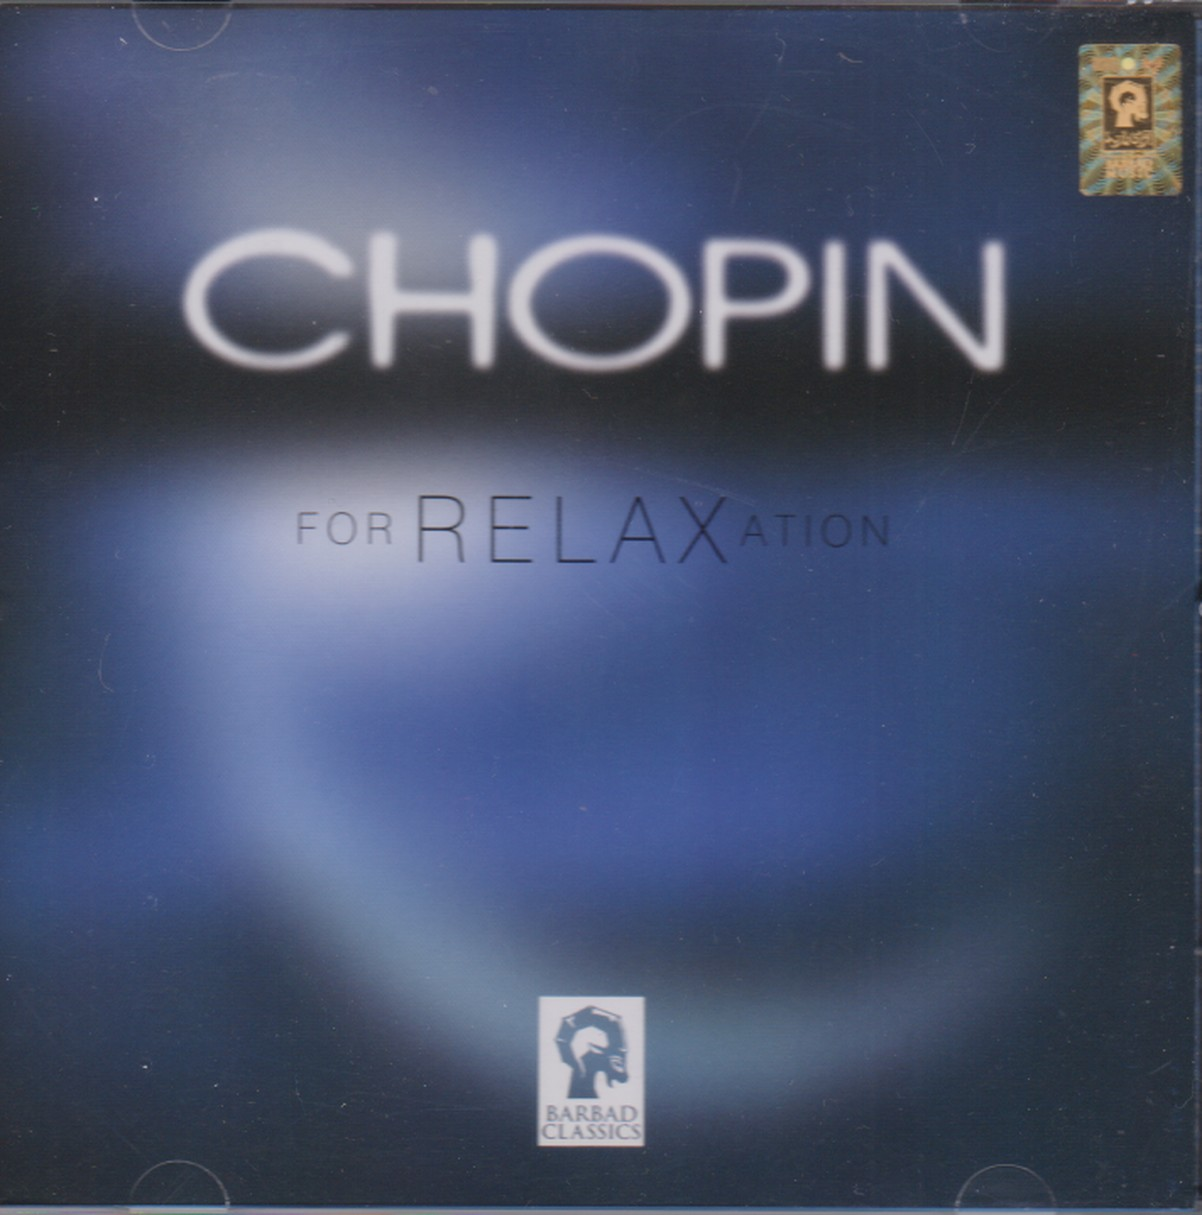 CHOPIN for relaxtion